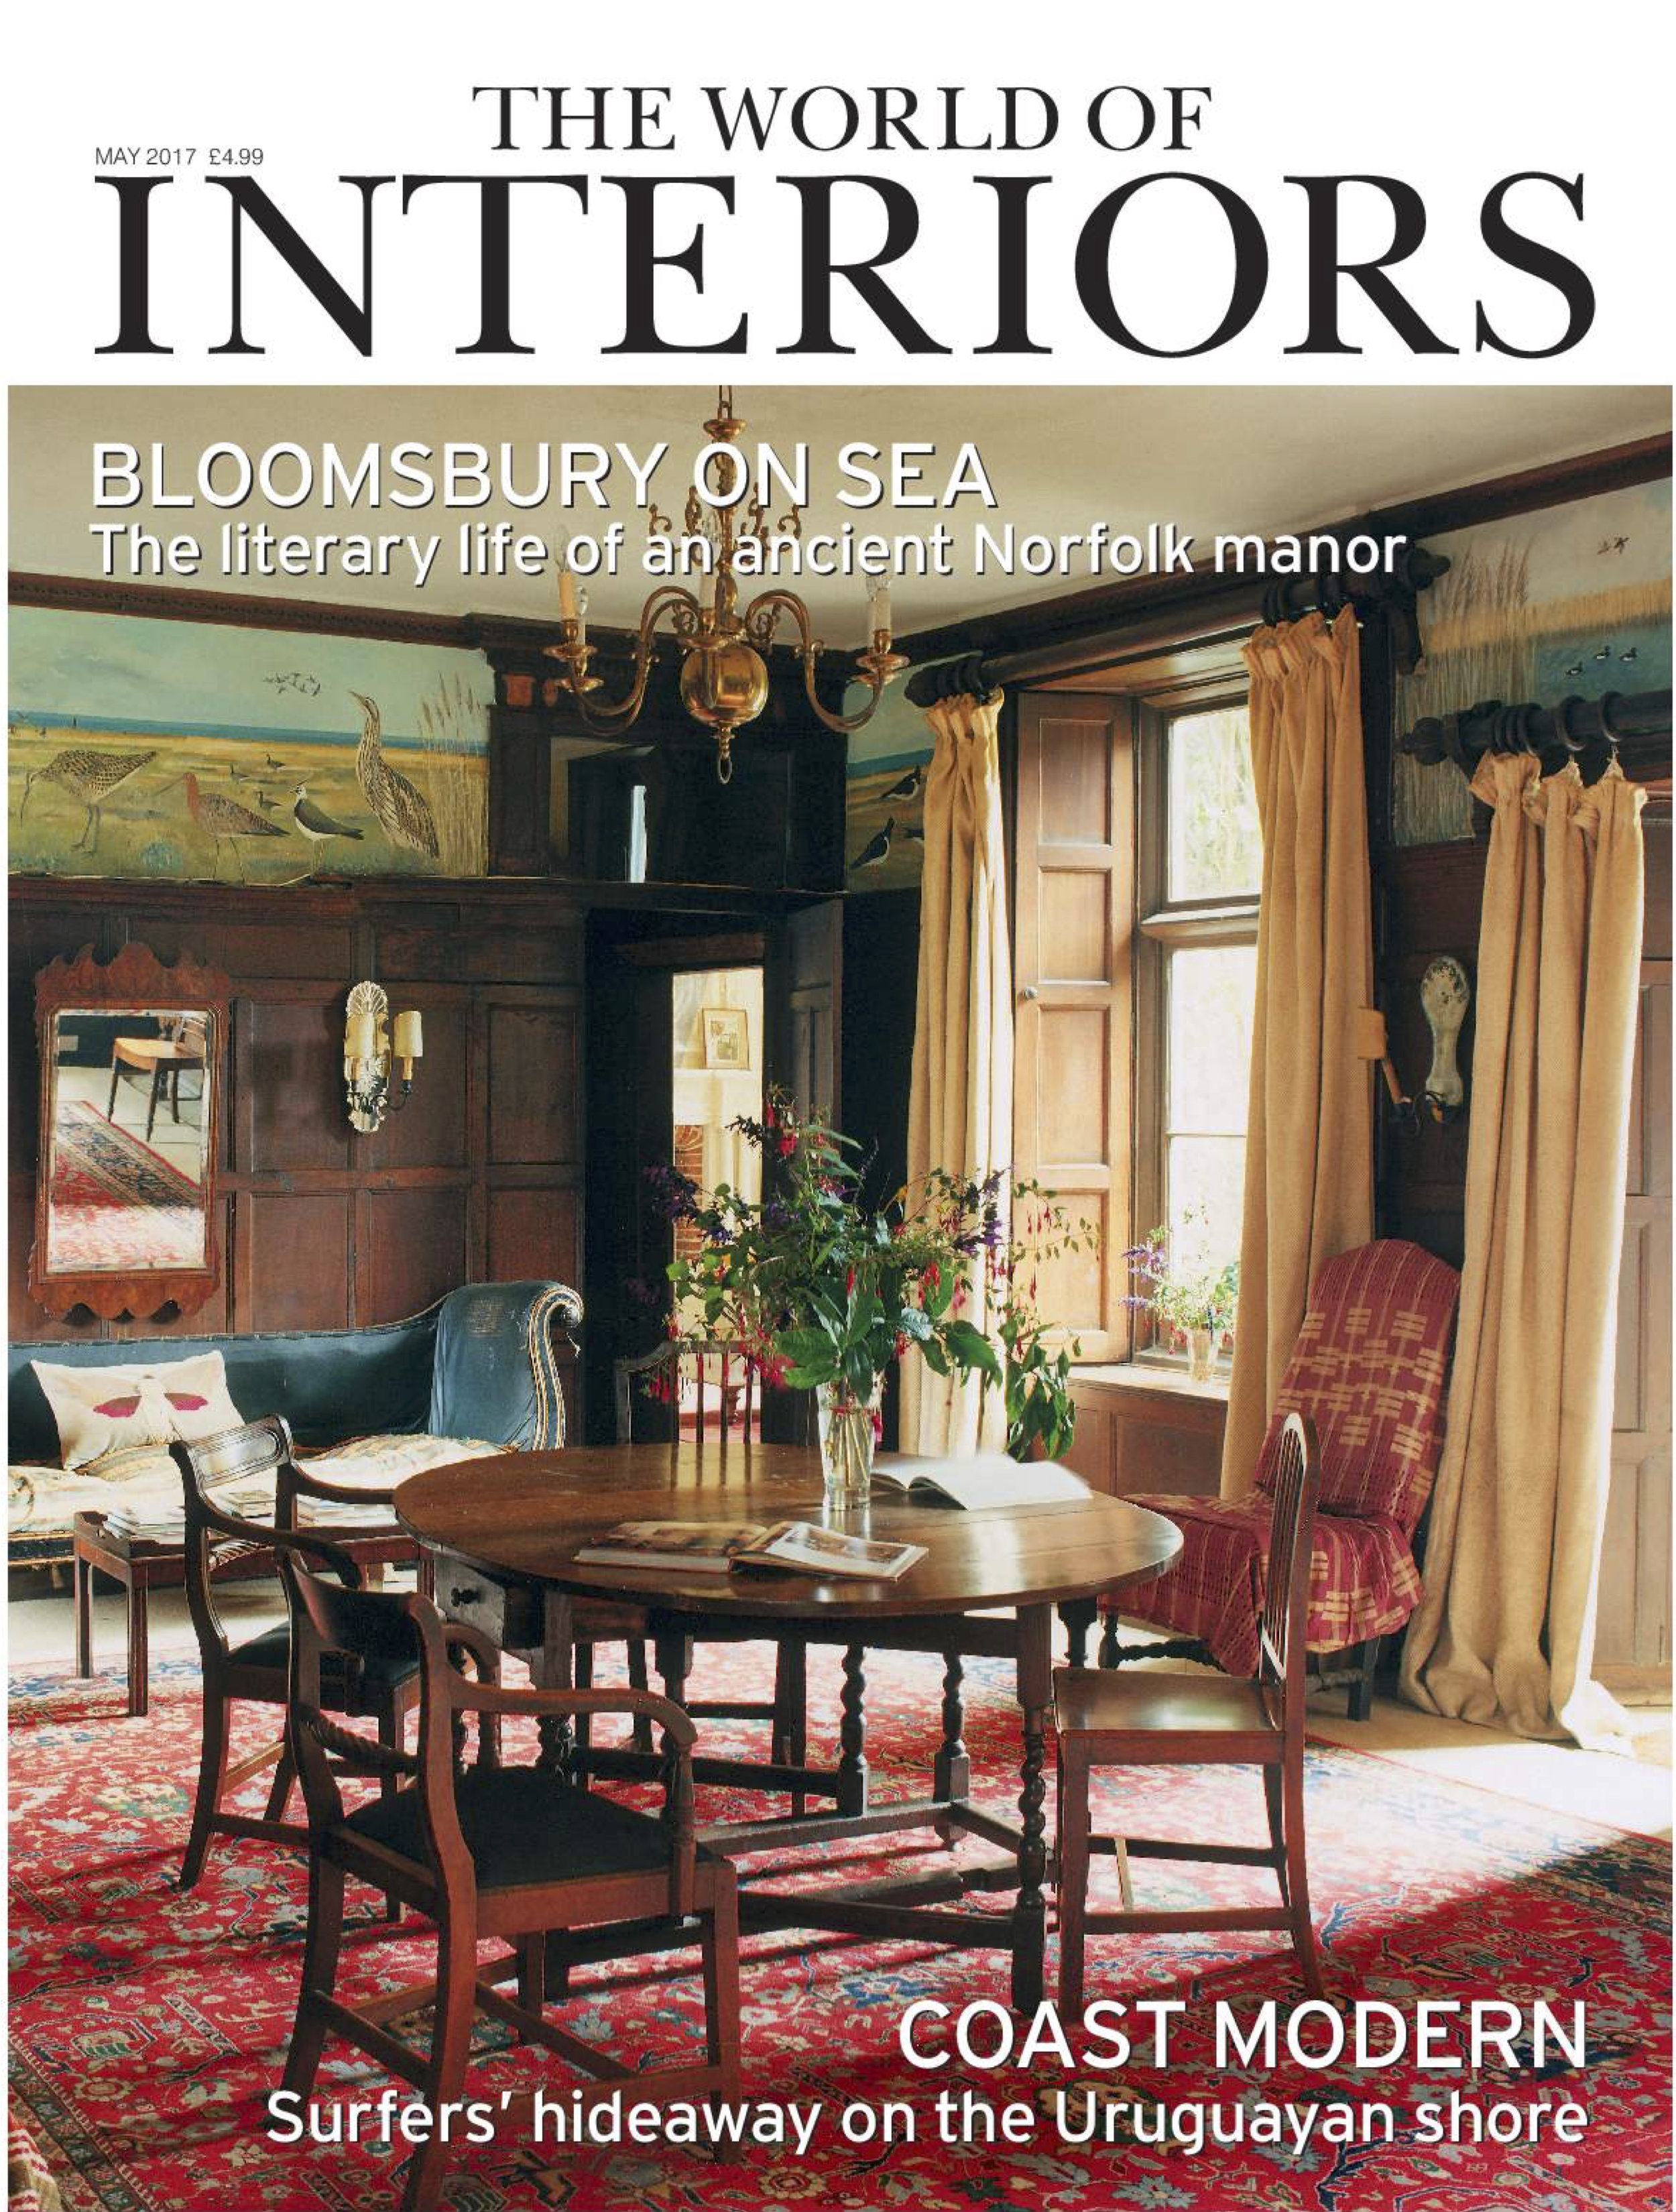 2017_05_world of interiors 1.jpg